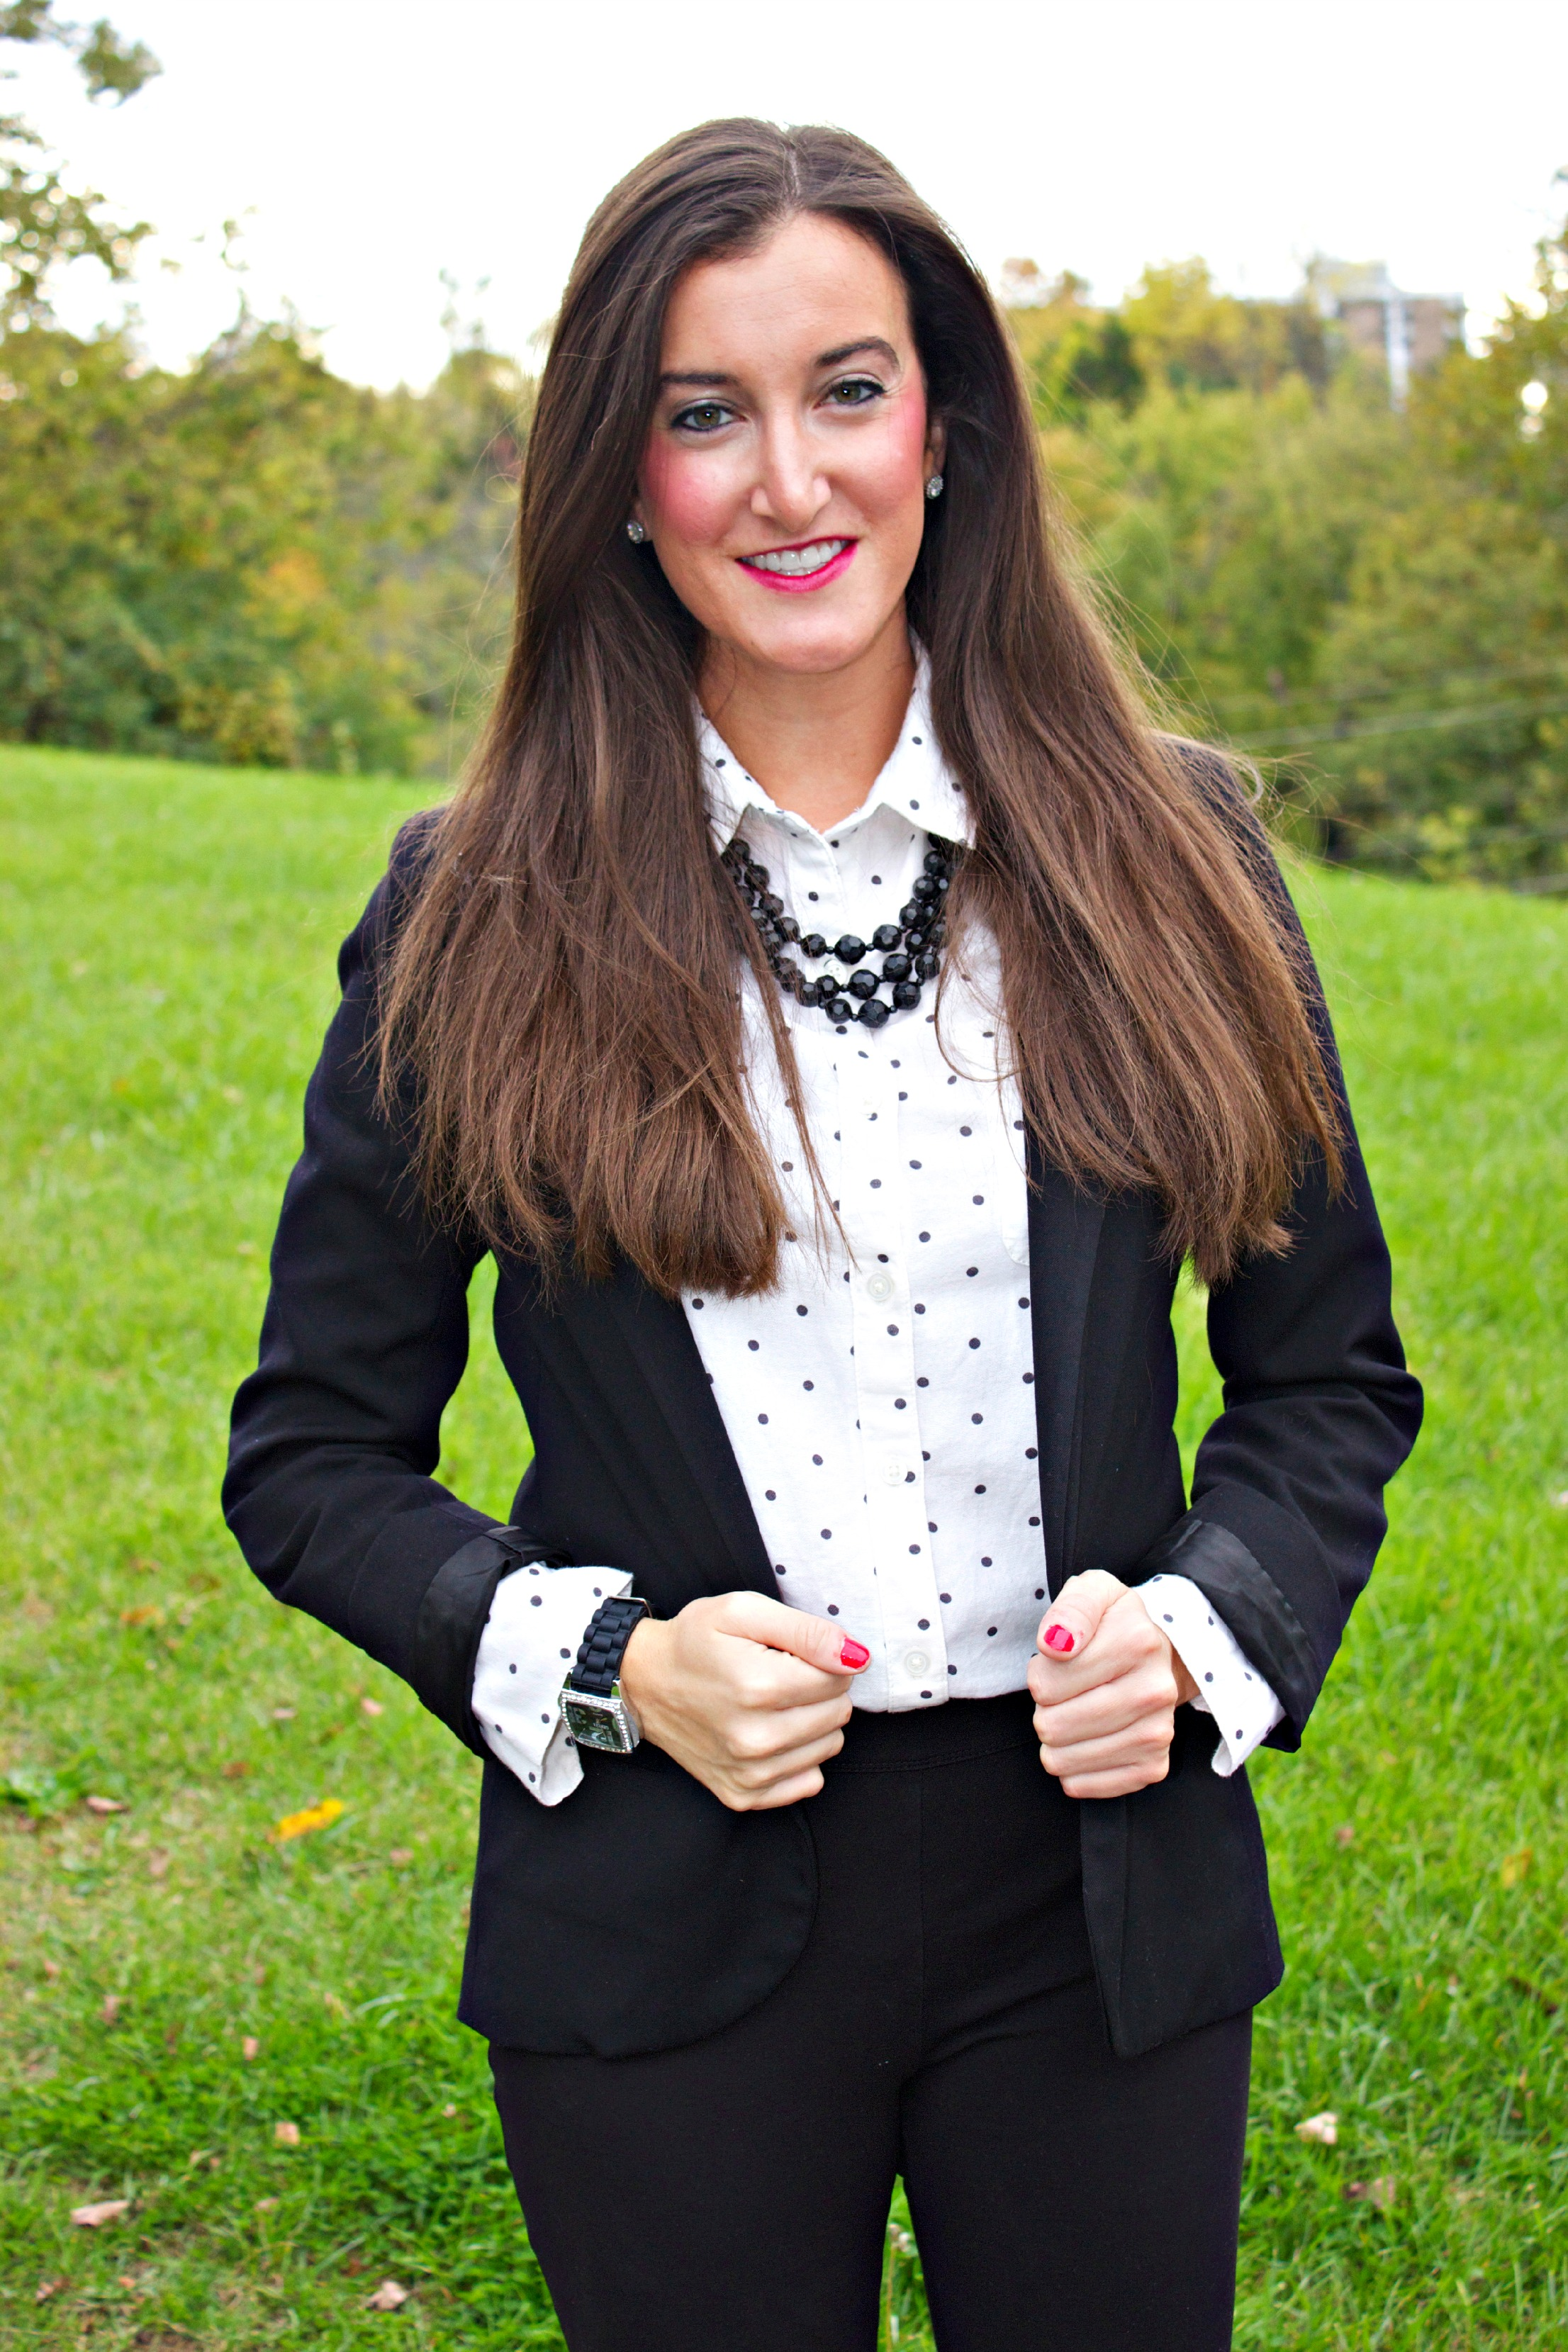 Preppy Black and White Outfit